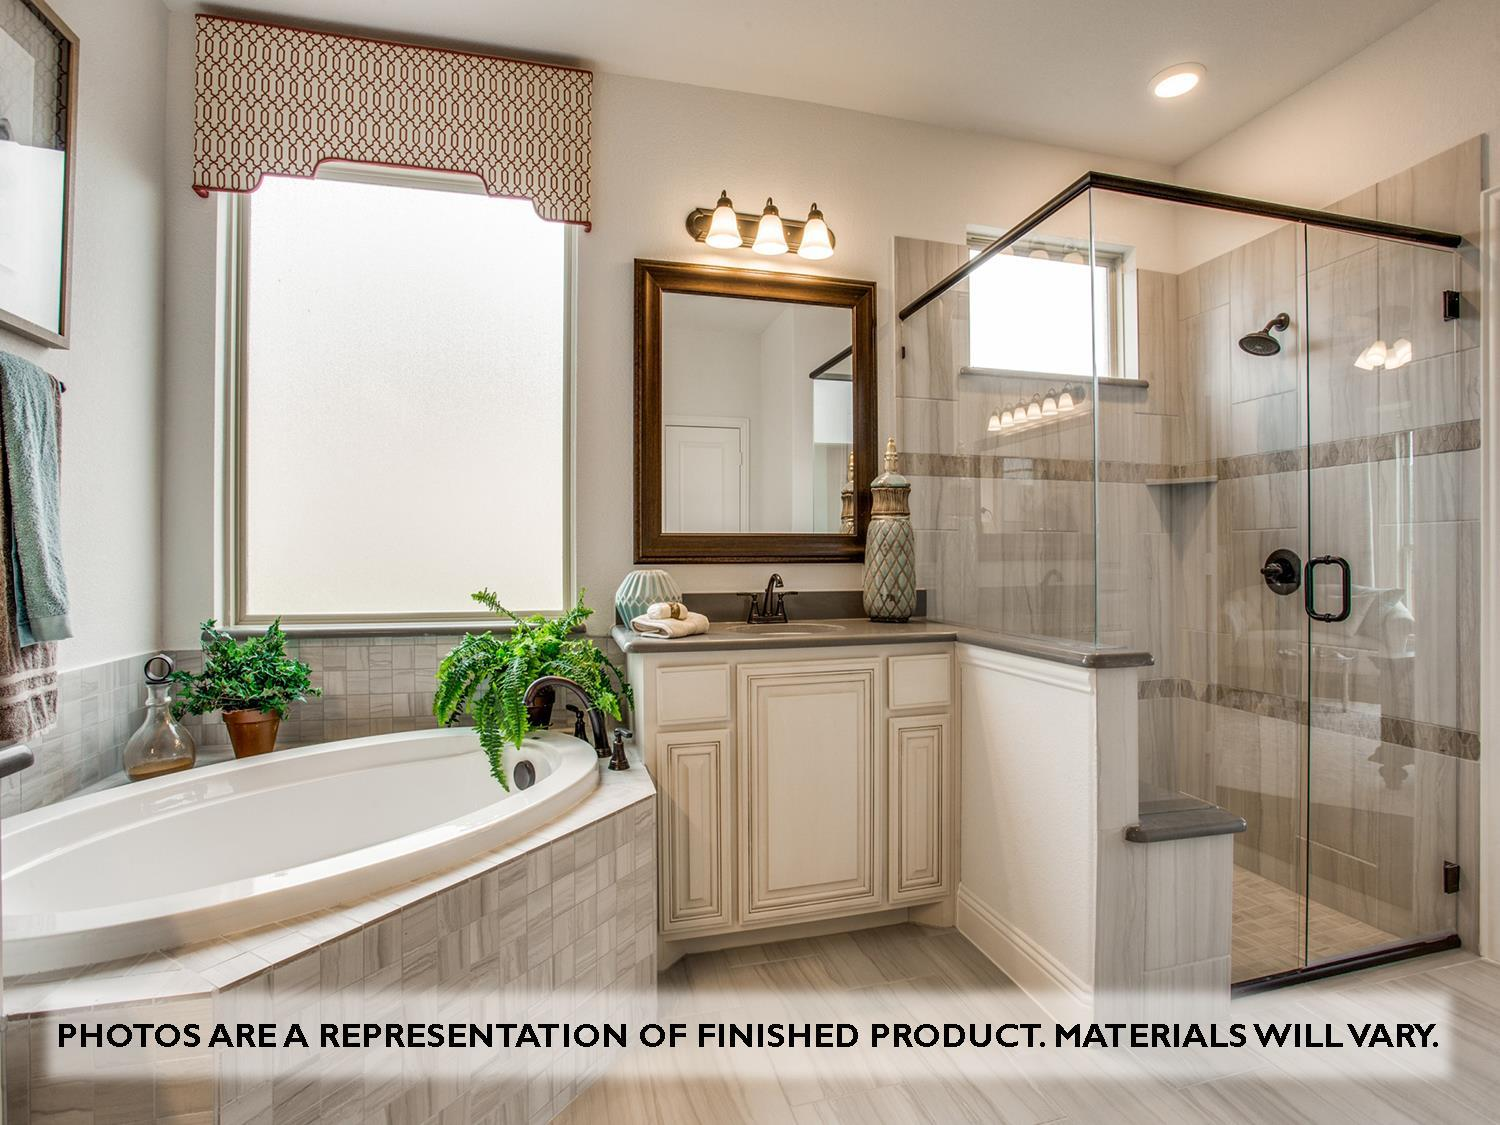 Bathroom featured in the Primrose FE VI By Bloomfield Homes in Dallas, TX